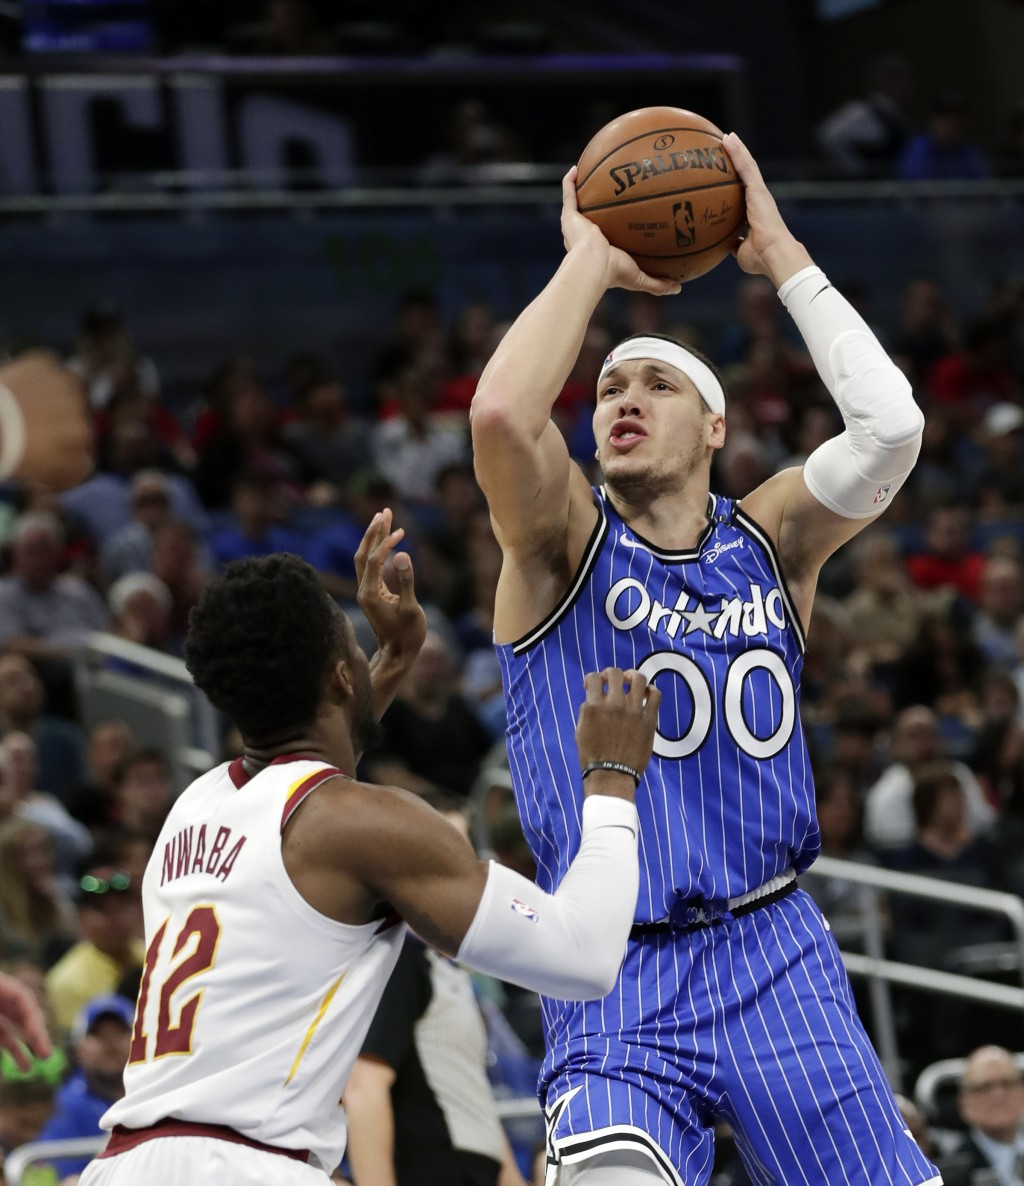 Orlando Magic's Aaron Gordon (00) shoots over Cleveland Cavaliers' David Nwaba (12) during the first half of an NBA basketball game, Thursday, March 1